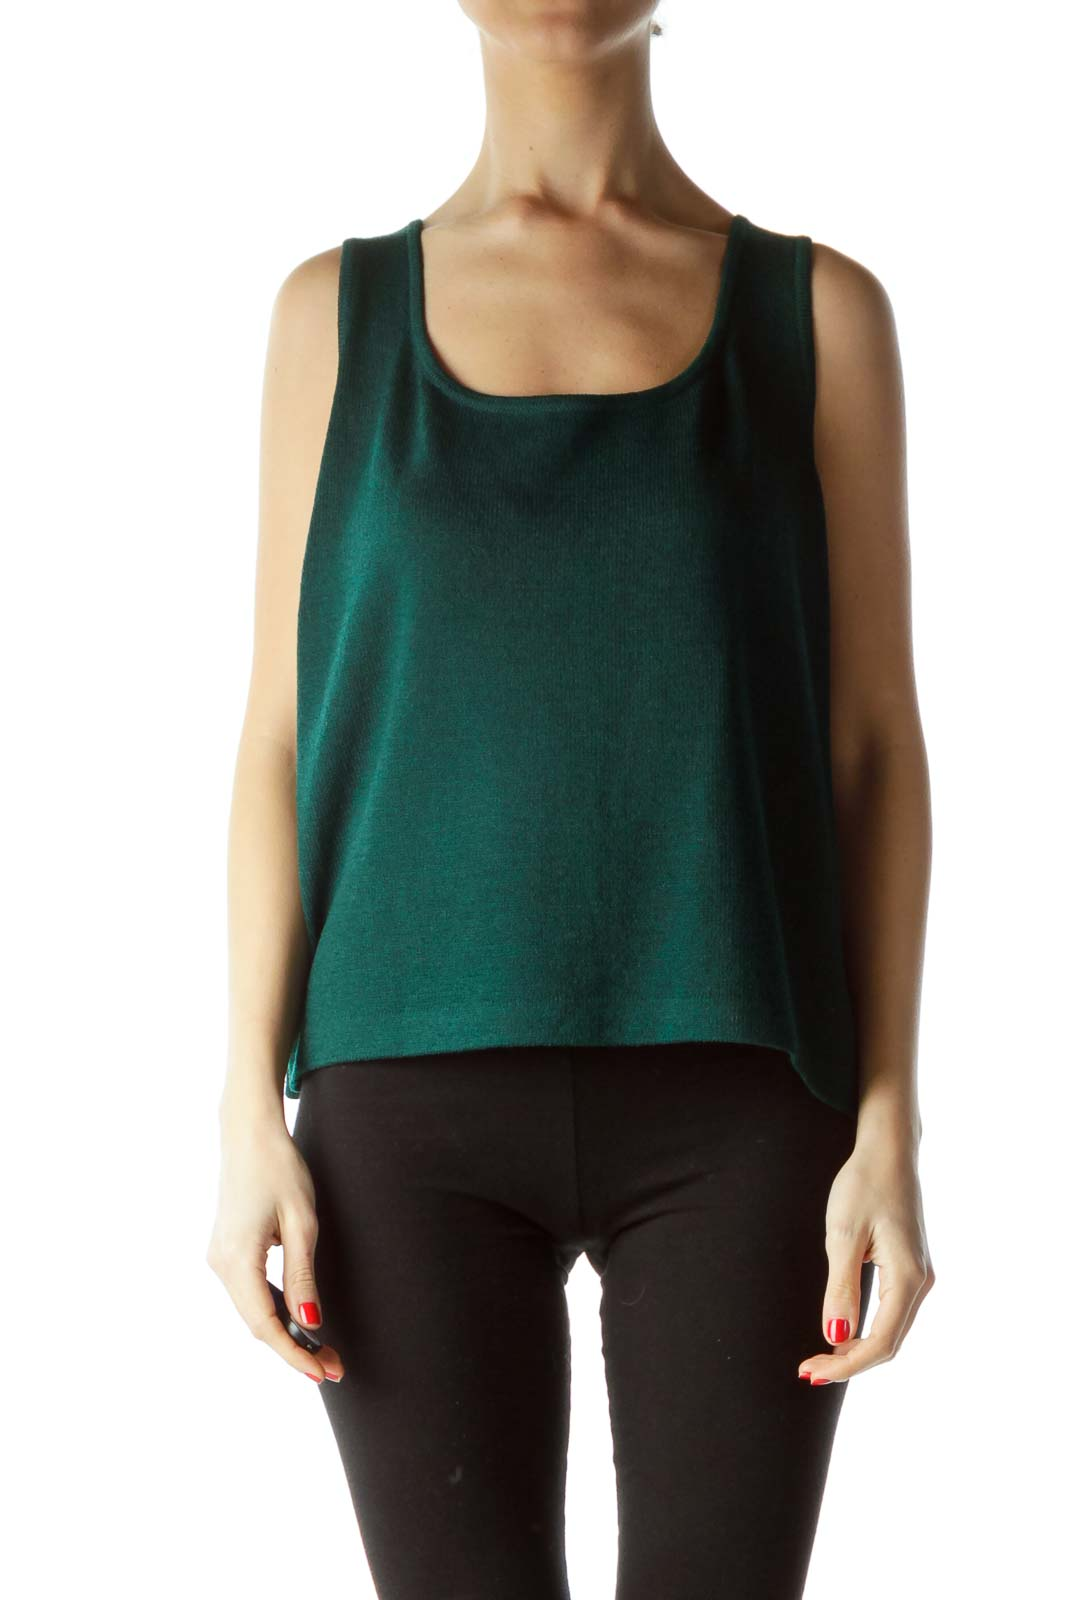 Green Sleeveless Knit Top